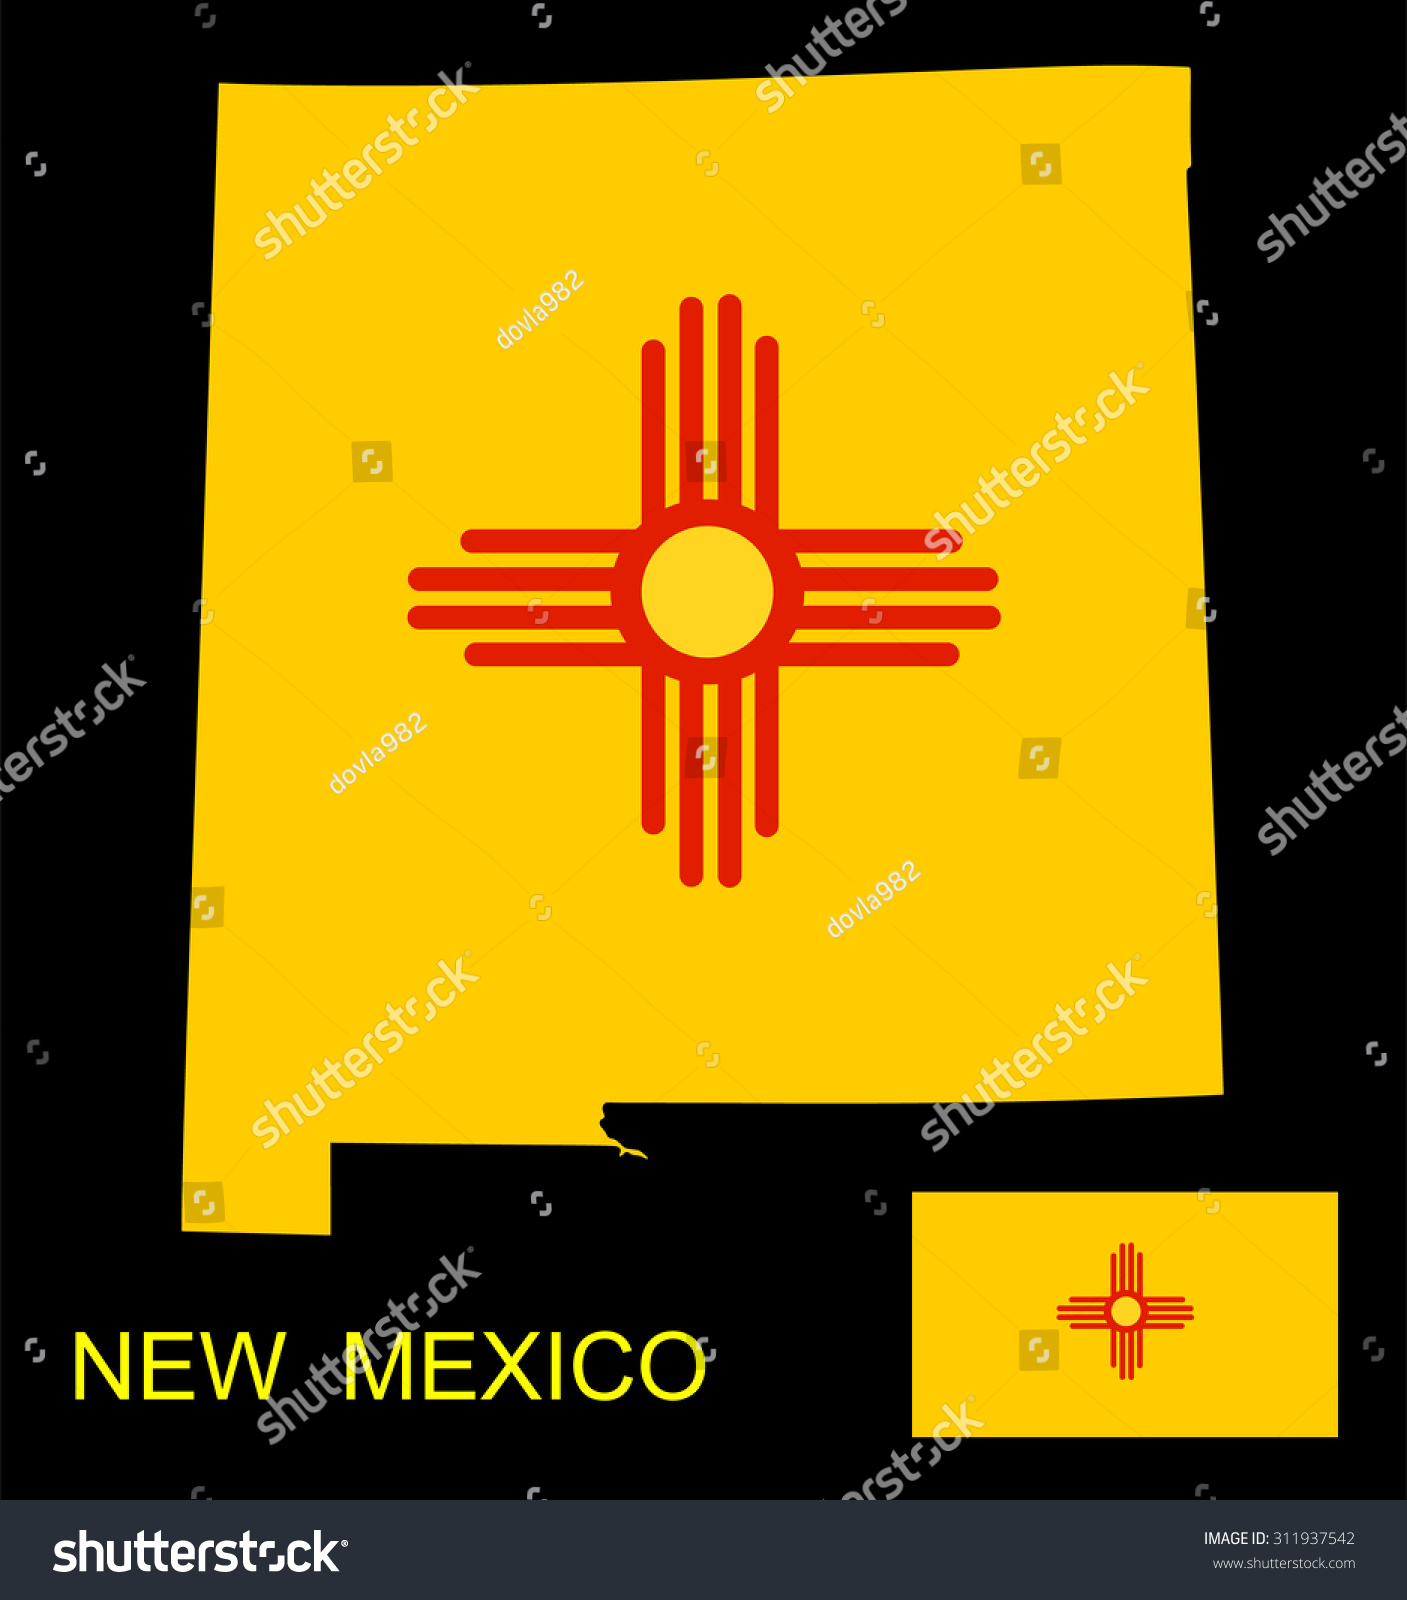 Map flag state new mexico vector stock vector 311937542 shutterstock map and flag of the state of new mexico vector illustration isolated on black background buycottarizona